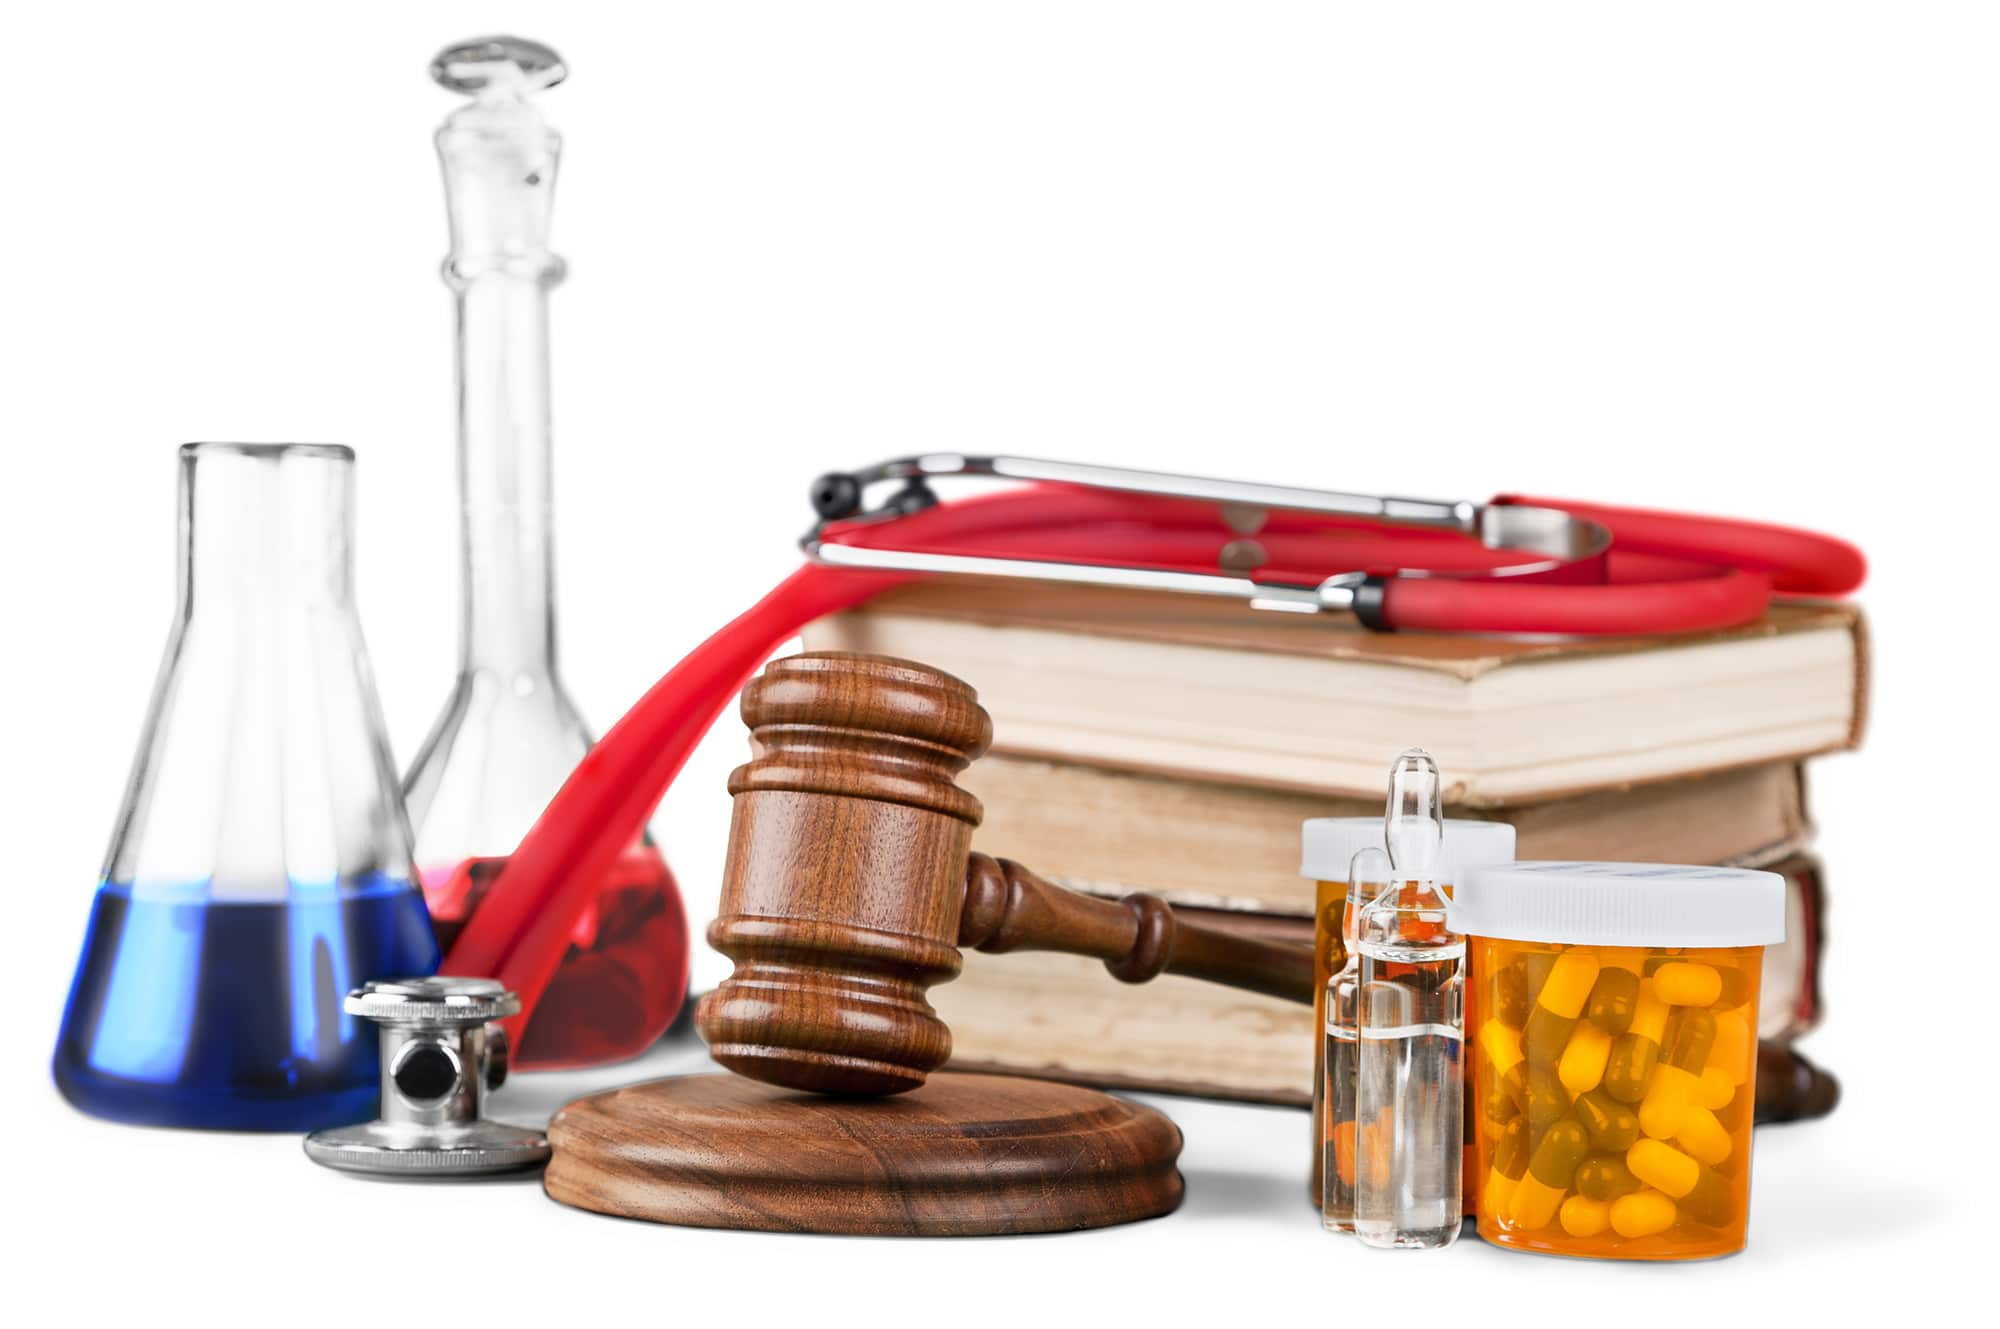 What Makes a Drug Legal or Illegal?